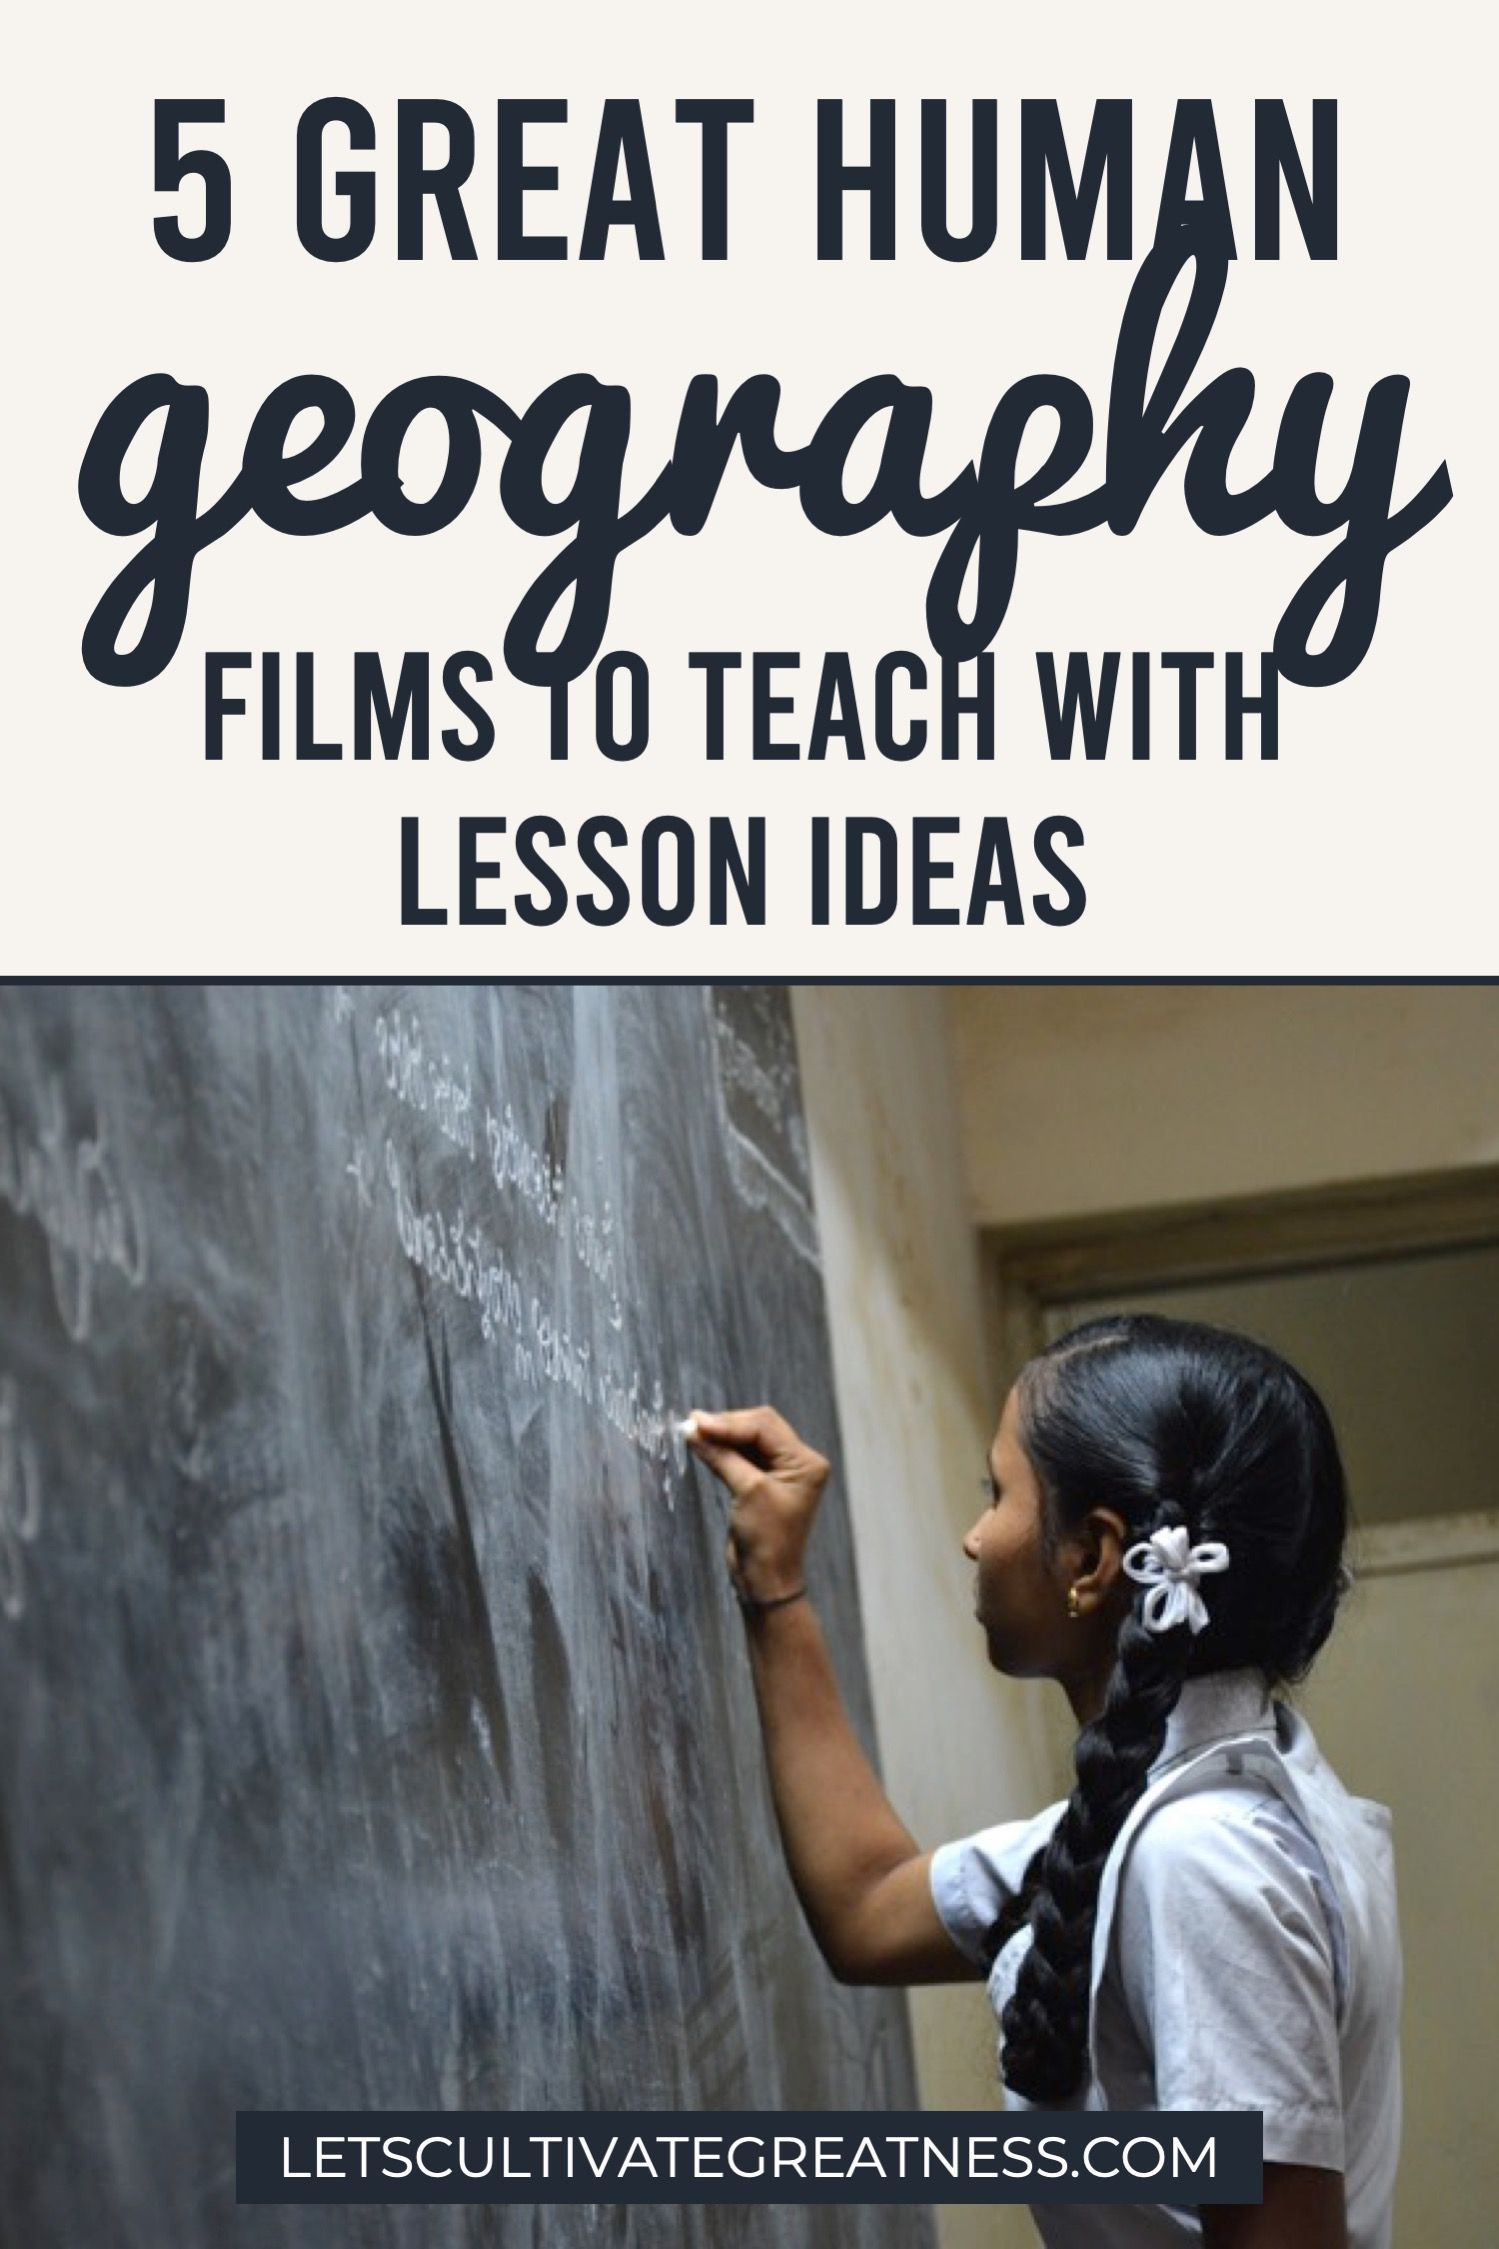 documentaries topics by Let's Cultivate Greatness   US History, Civics, & Leadership